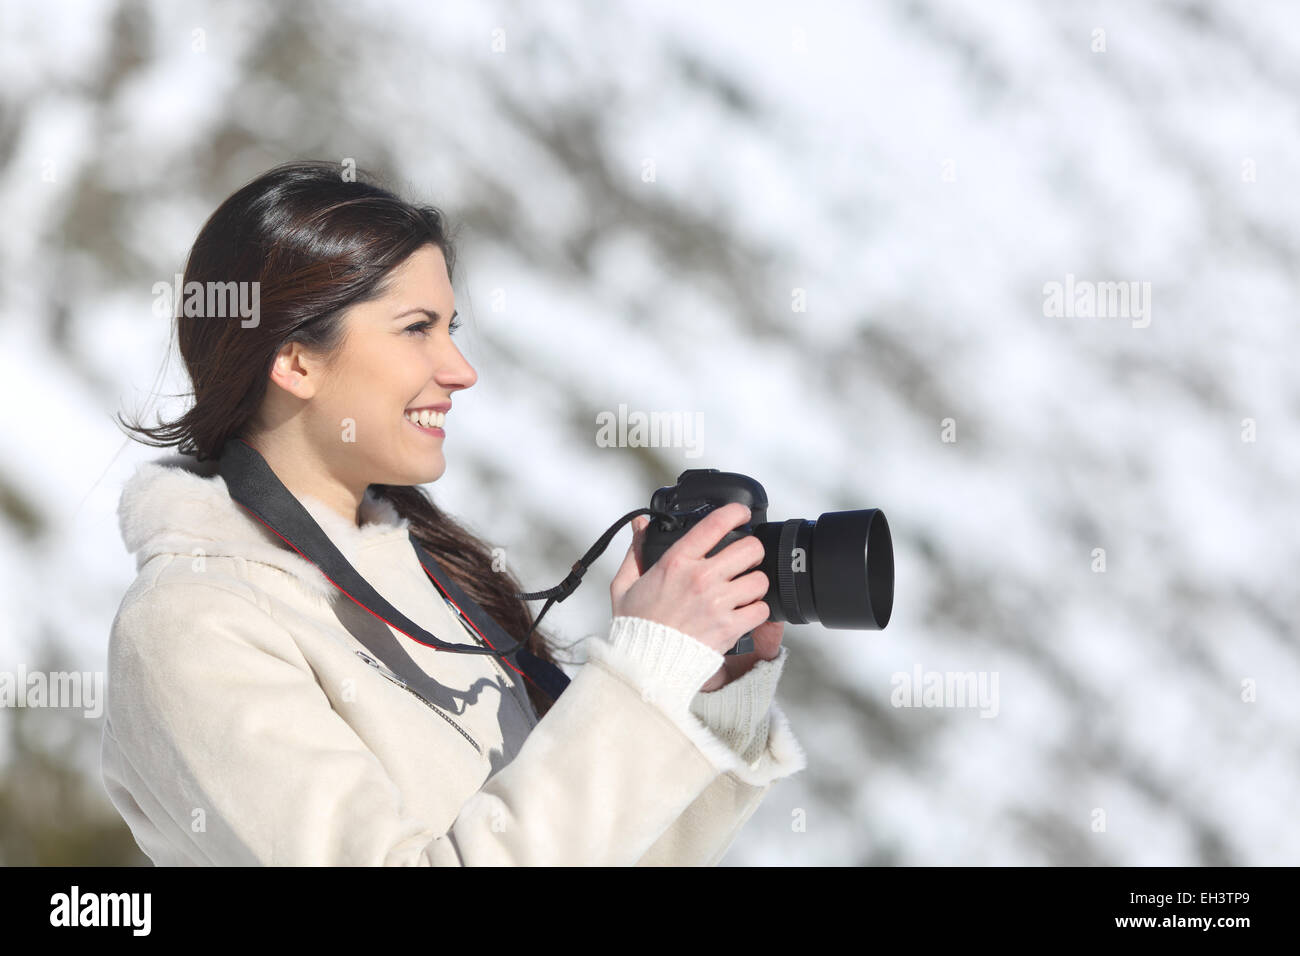 Tourist woman photographing on winter holidays with a snowy mountain in the background - Stock Image